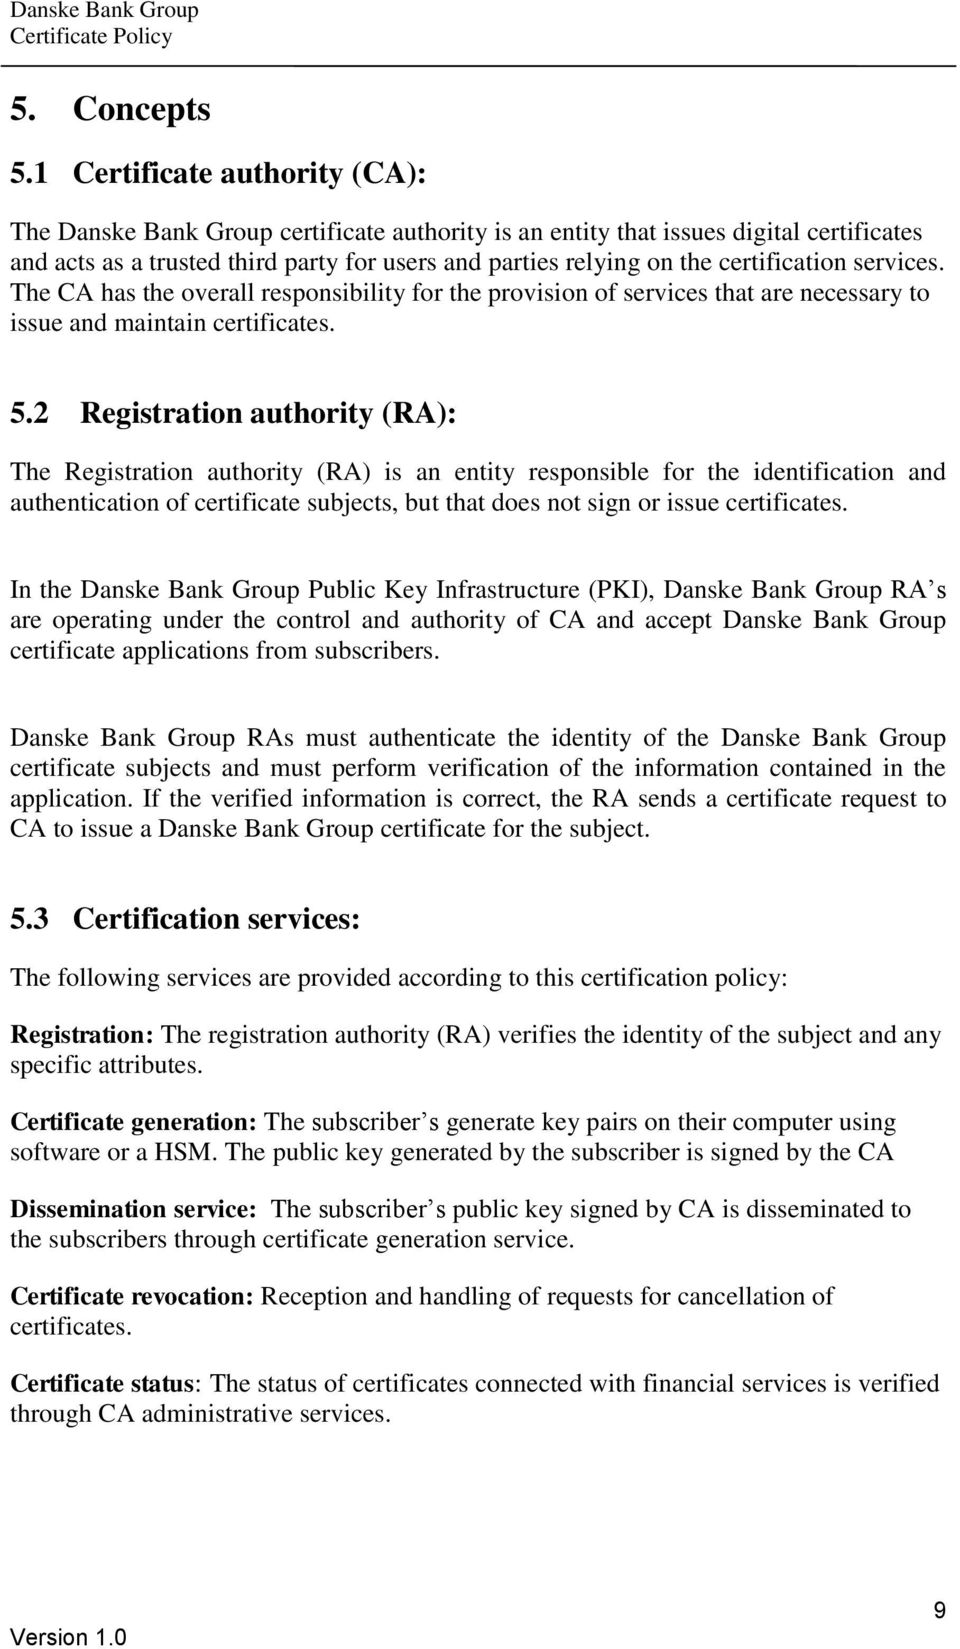 certification services. The CA has the overall responsibility for the provision of services that are necessary to issue and maintain certificates. 5.